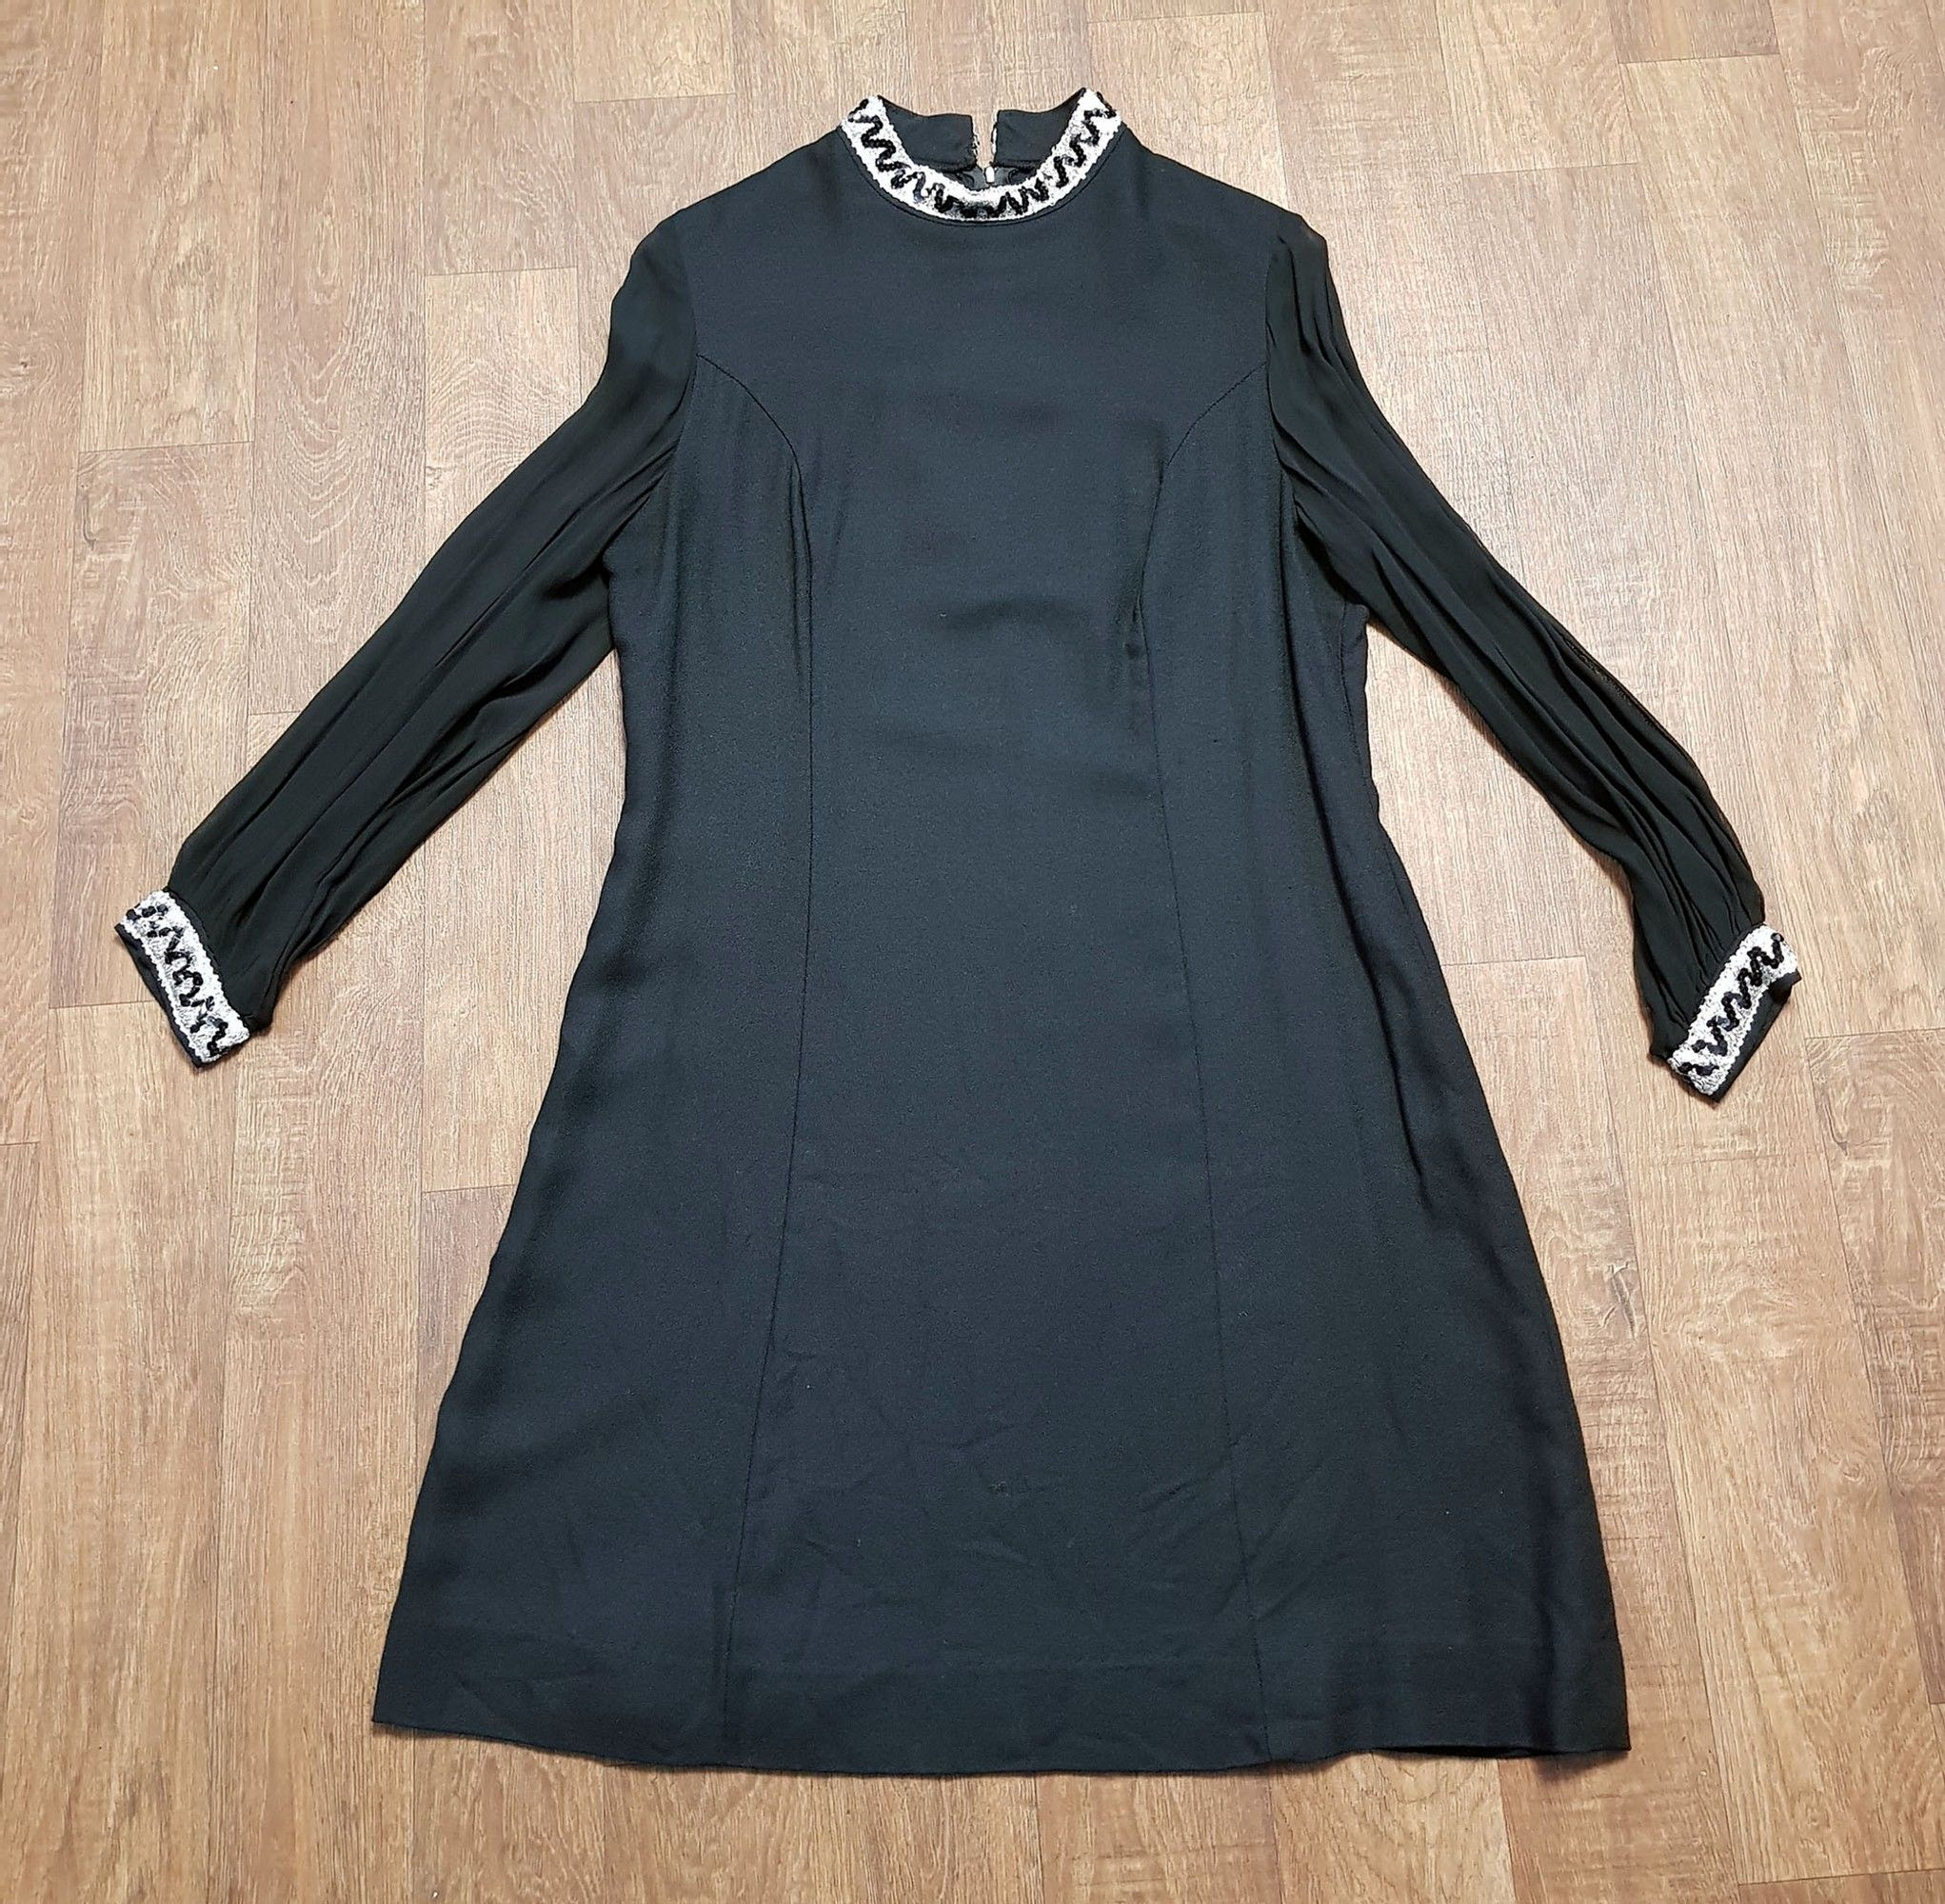 1960s Vintage Black Sheer Sleeve Cocktail Dress UK Size 14